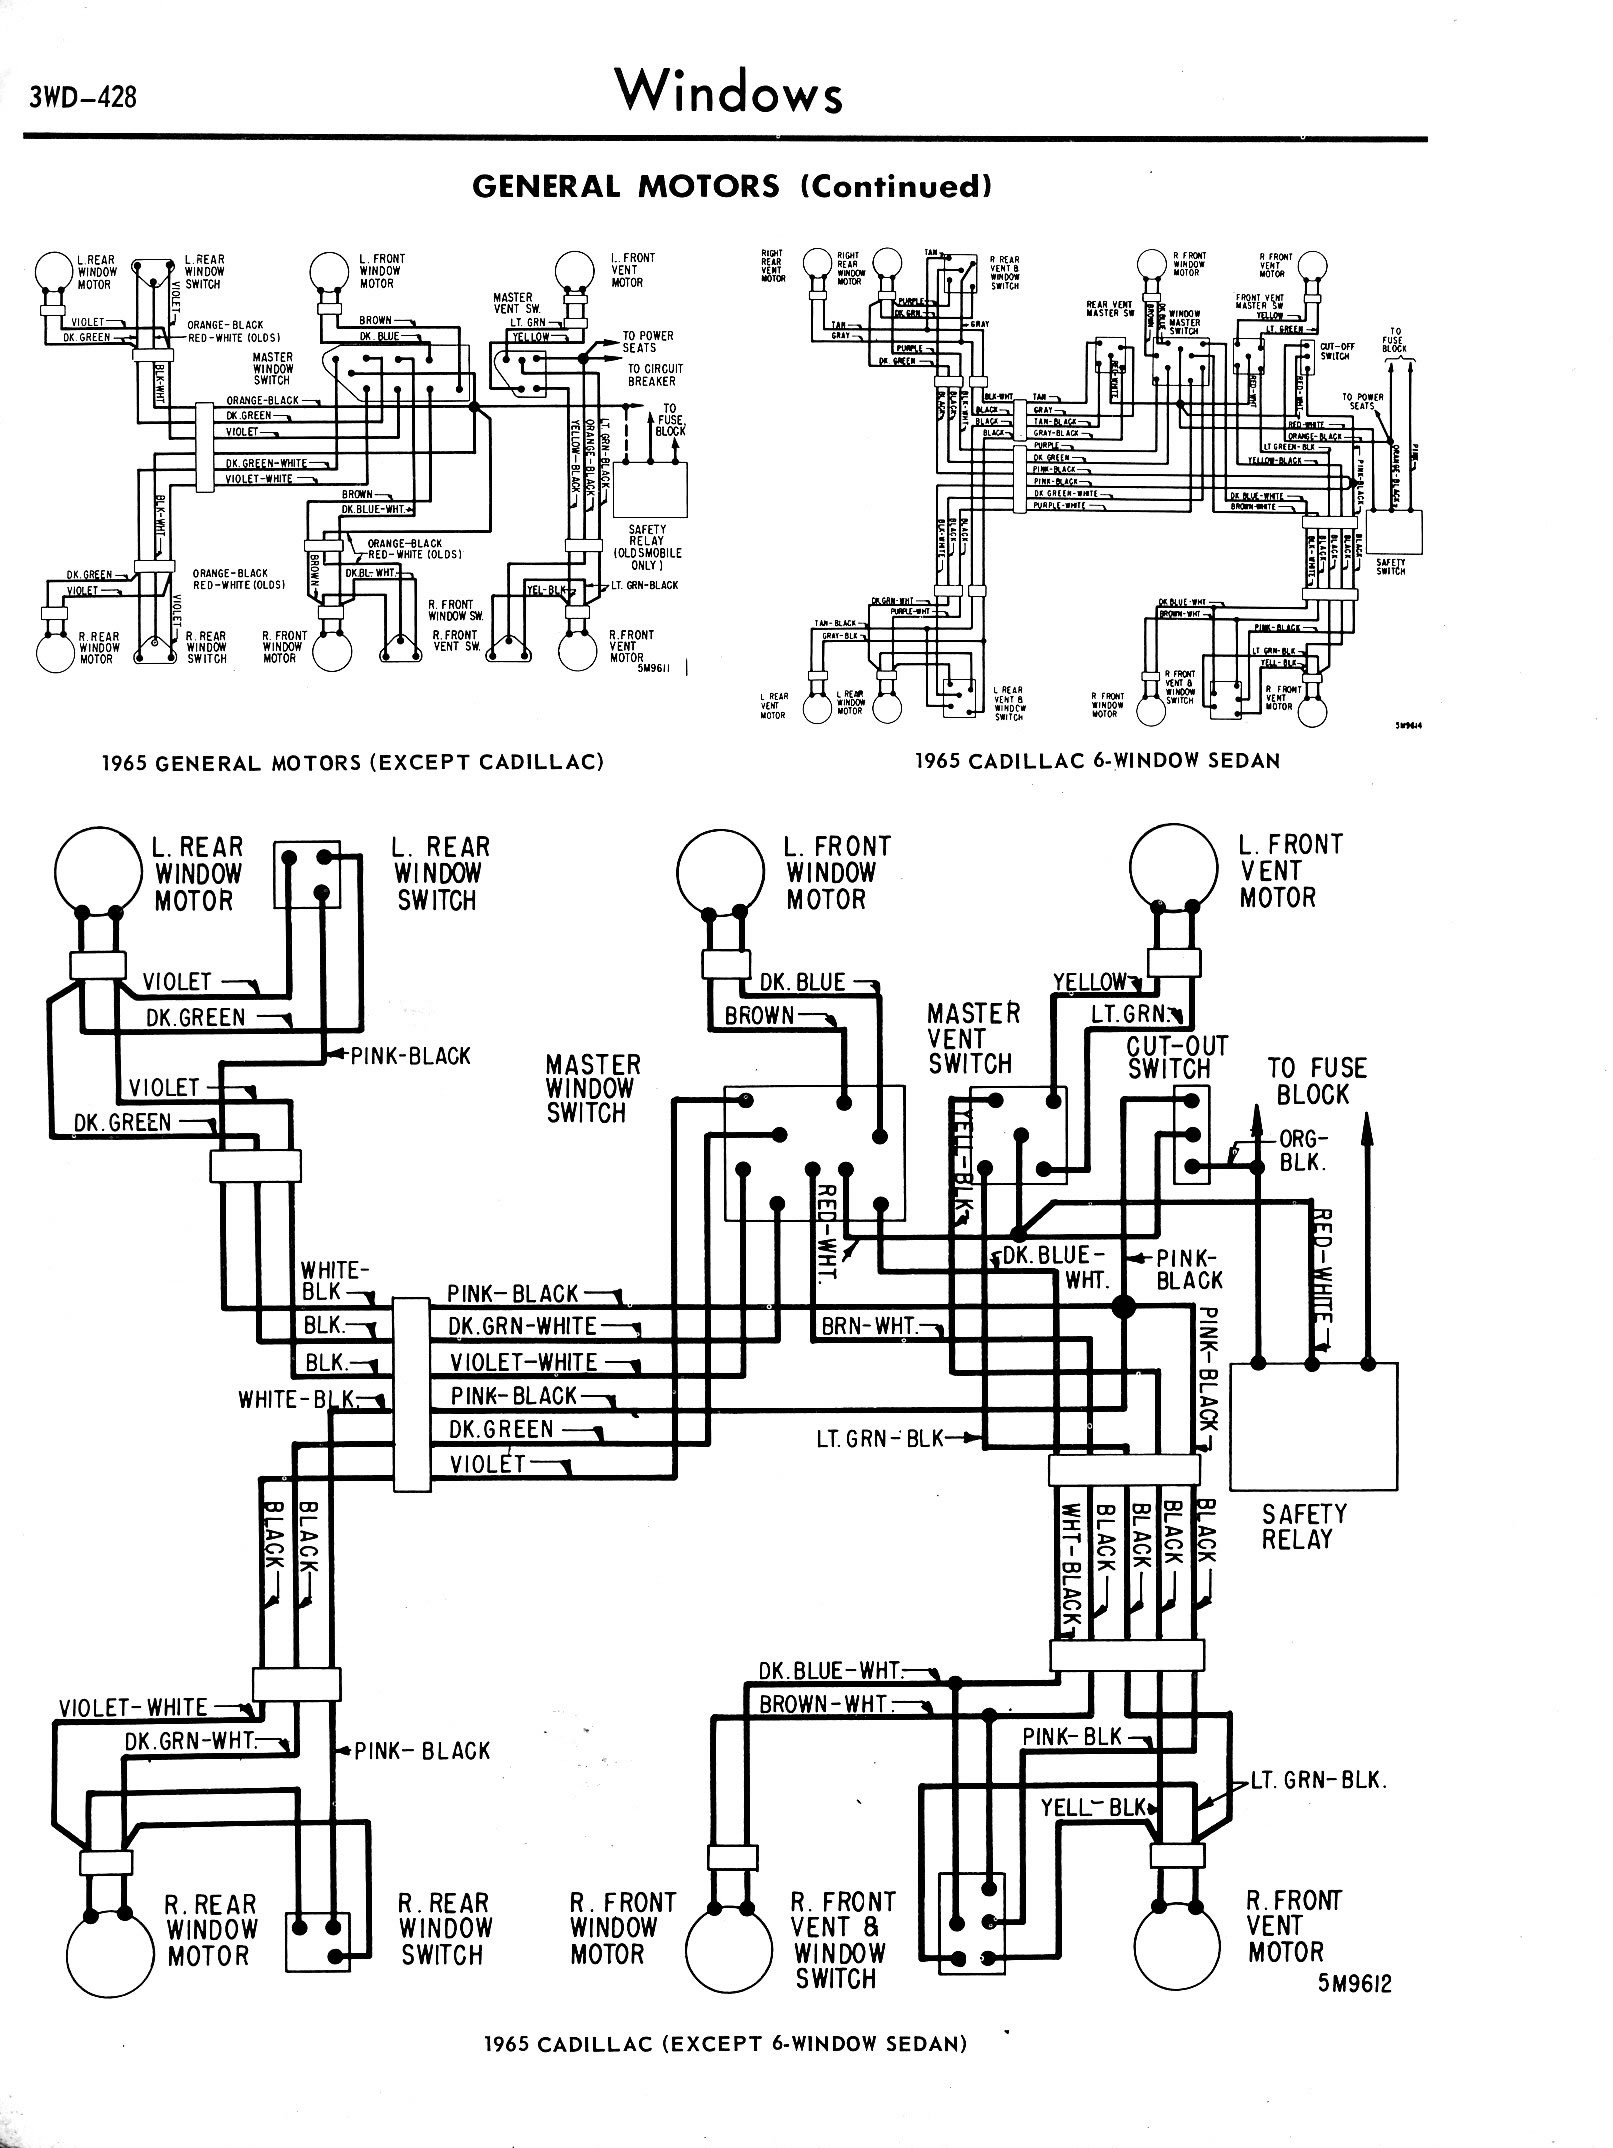 1964 thunderbird radio wiring diagram 1964 thunderbird 1990 ford thunderbird fuse box 1964 ford thunderbird fuse box